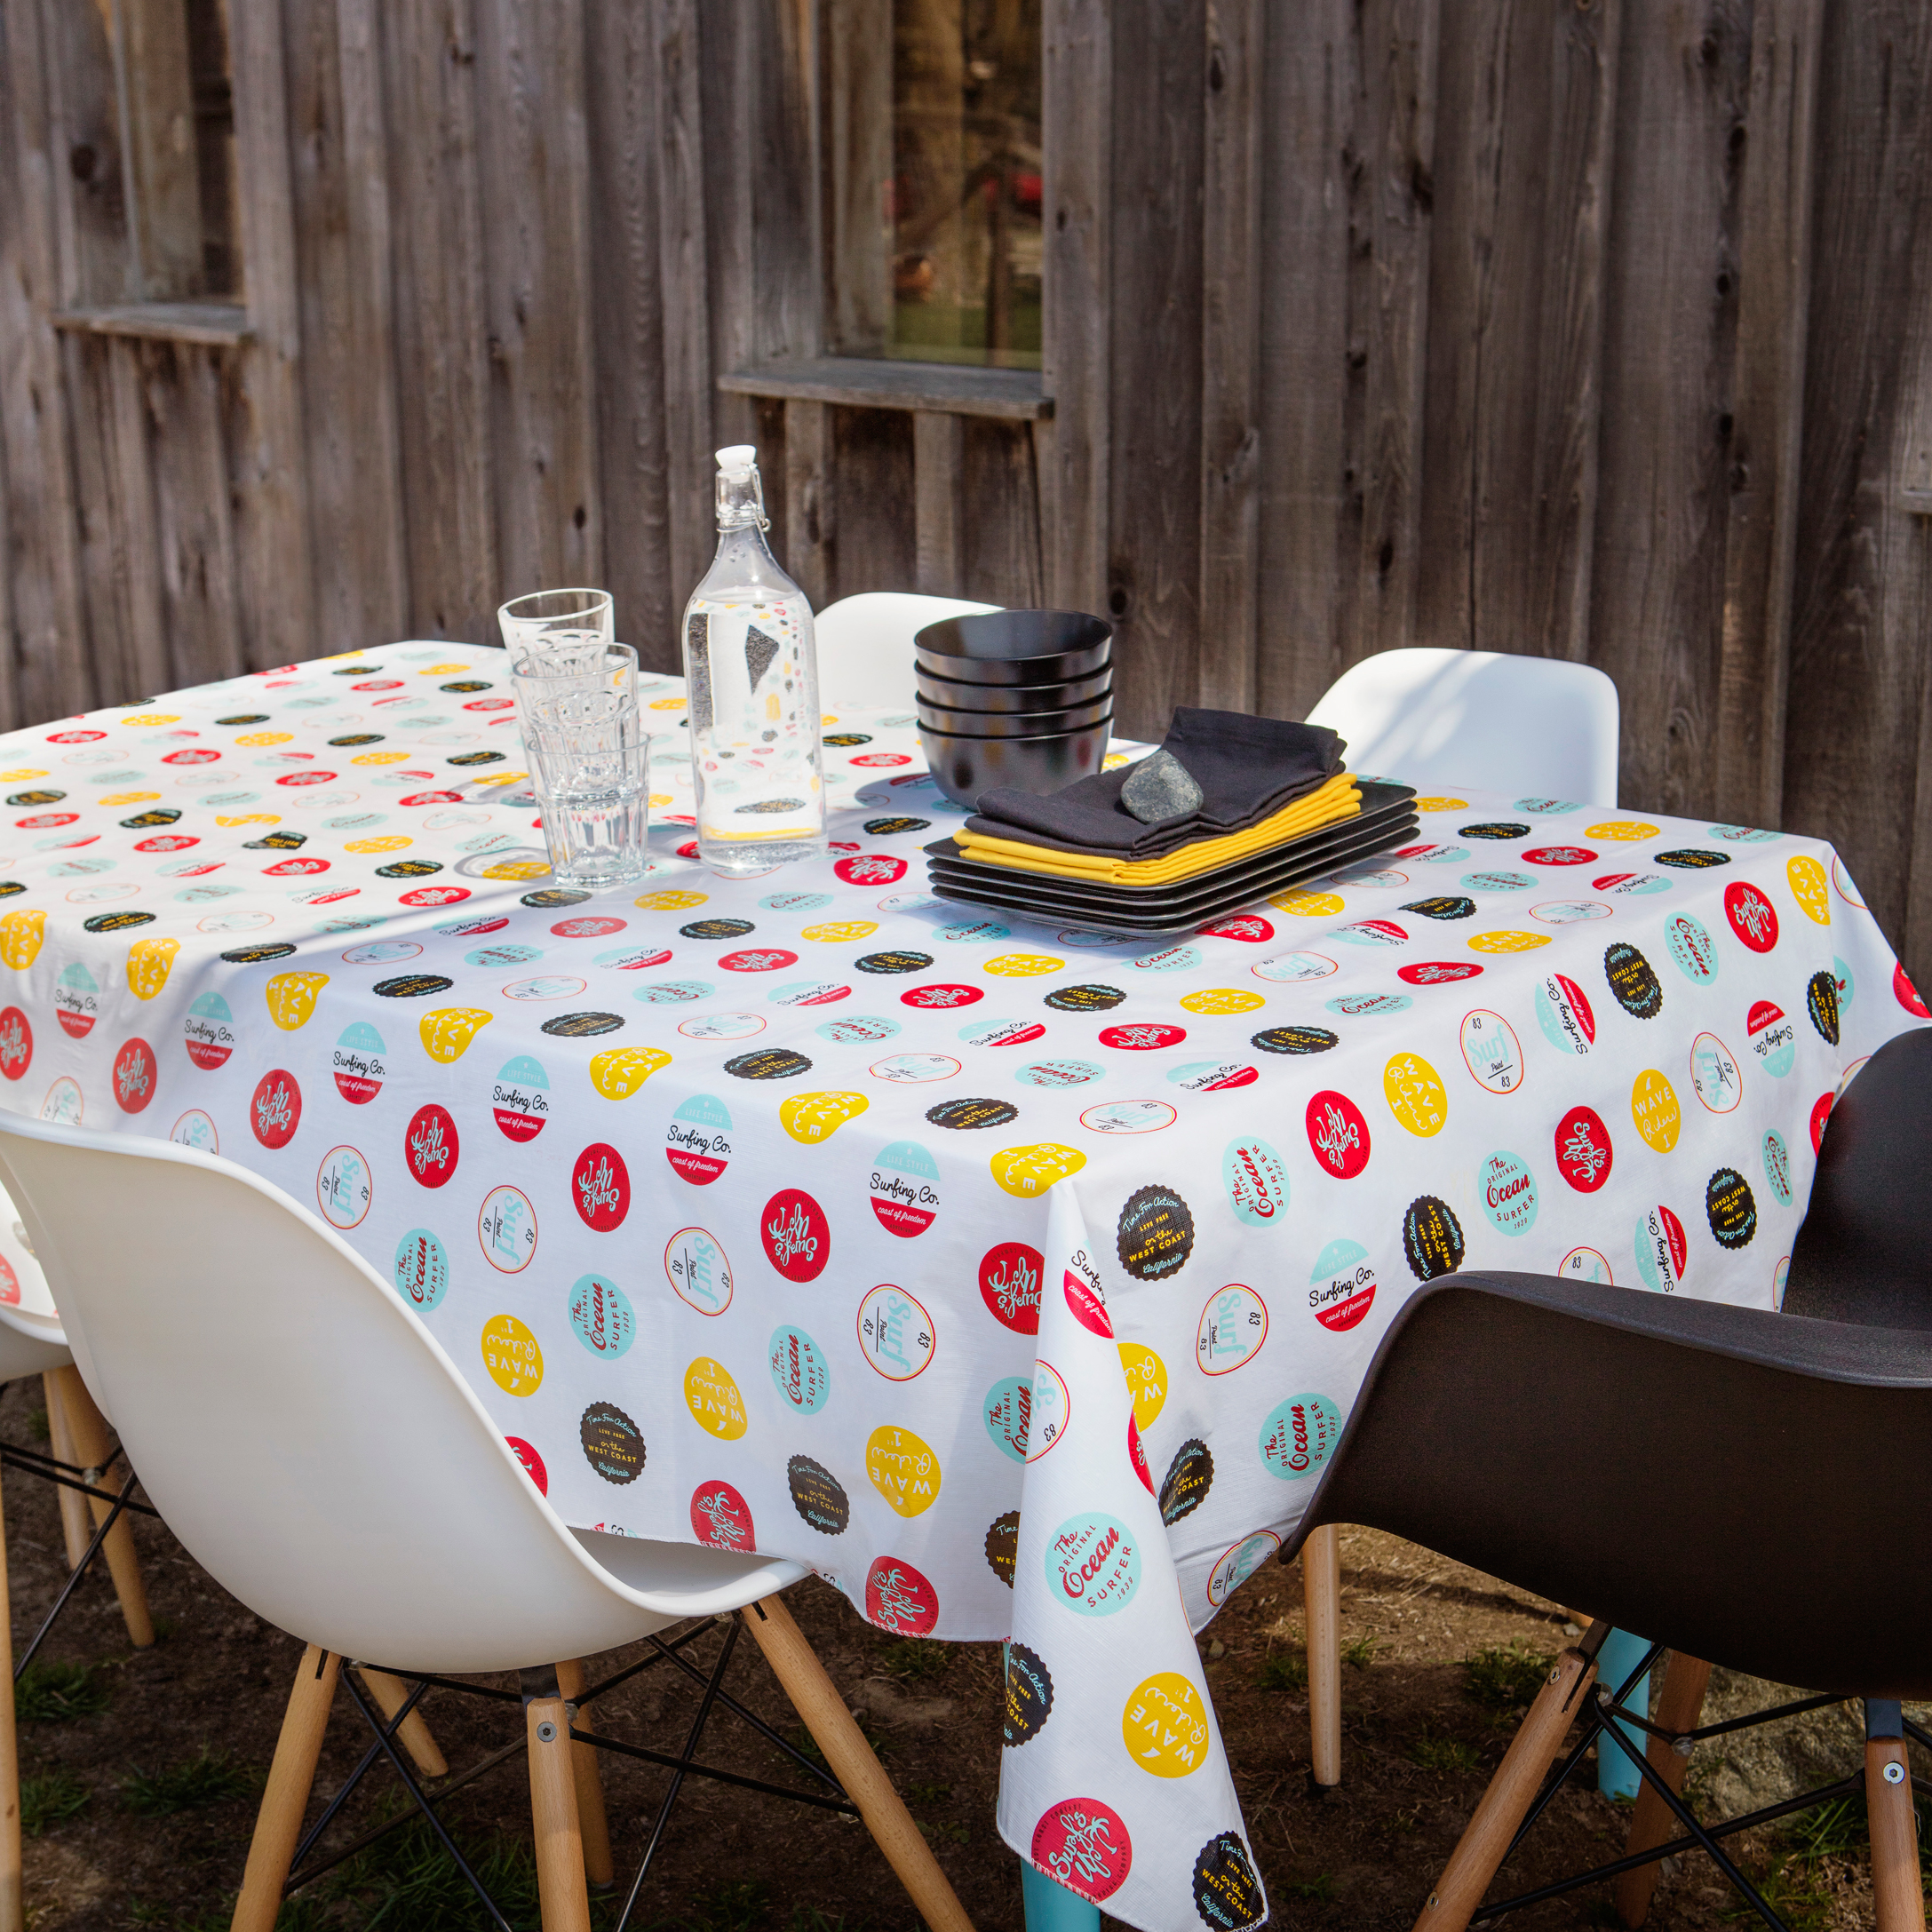 Vinyl Tablecloths | Vinyl Tablecloth 60 X 84 | Heavy Vinyl Tablecloth